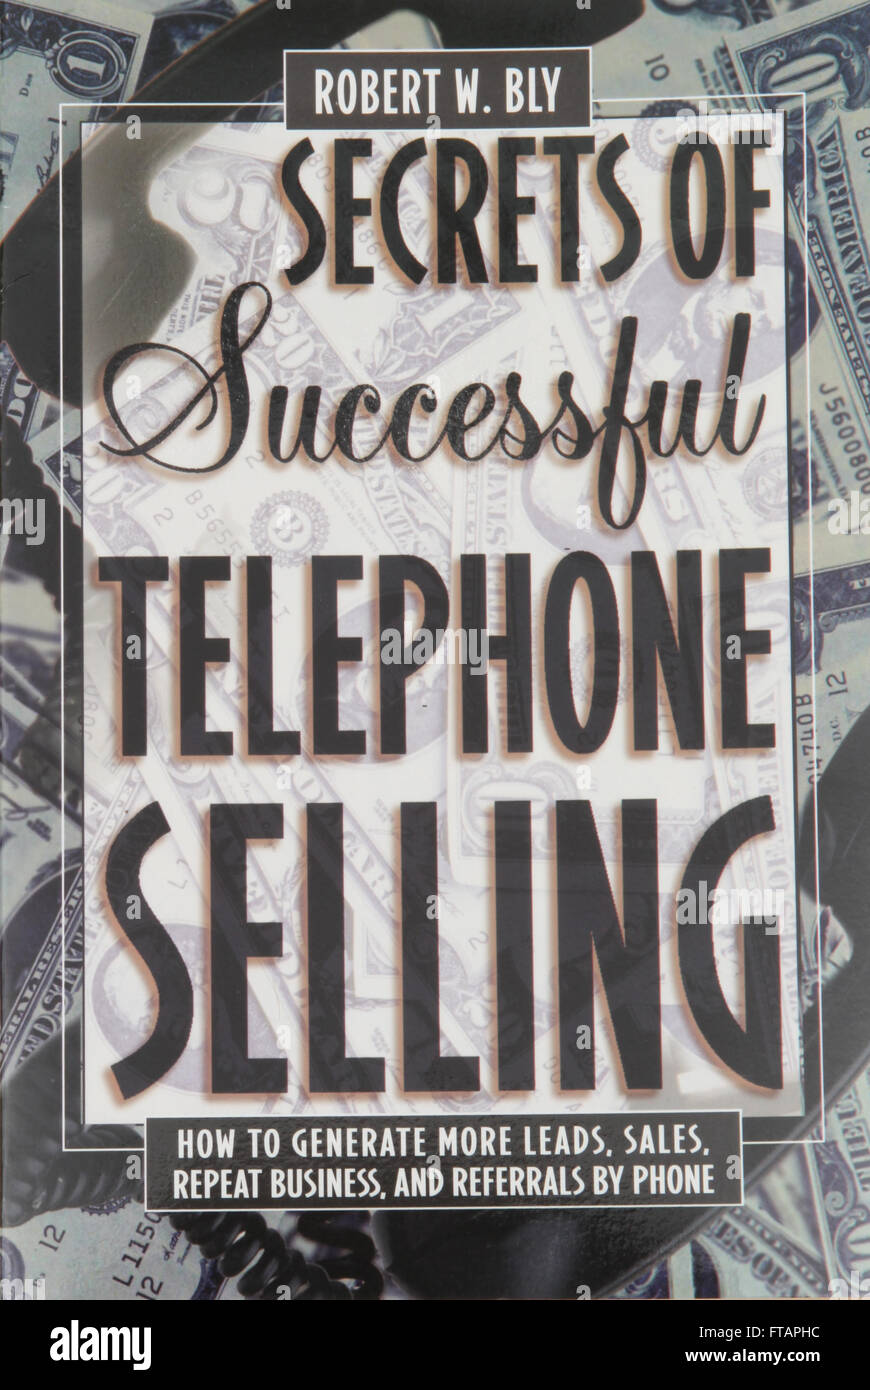 The book Secrets of Successful Telephone Selling by Robert W Bly - Stock Image